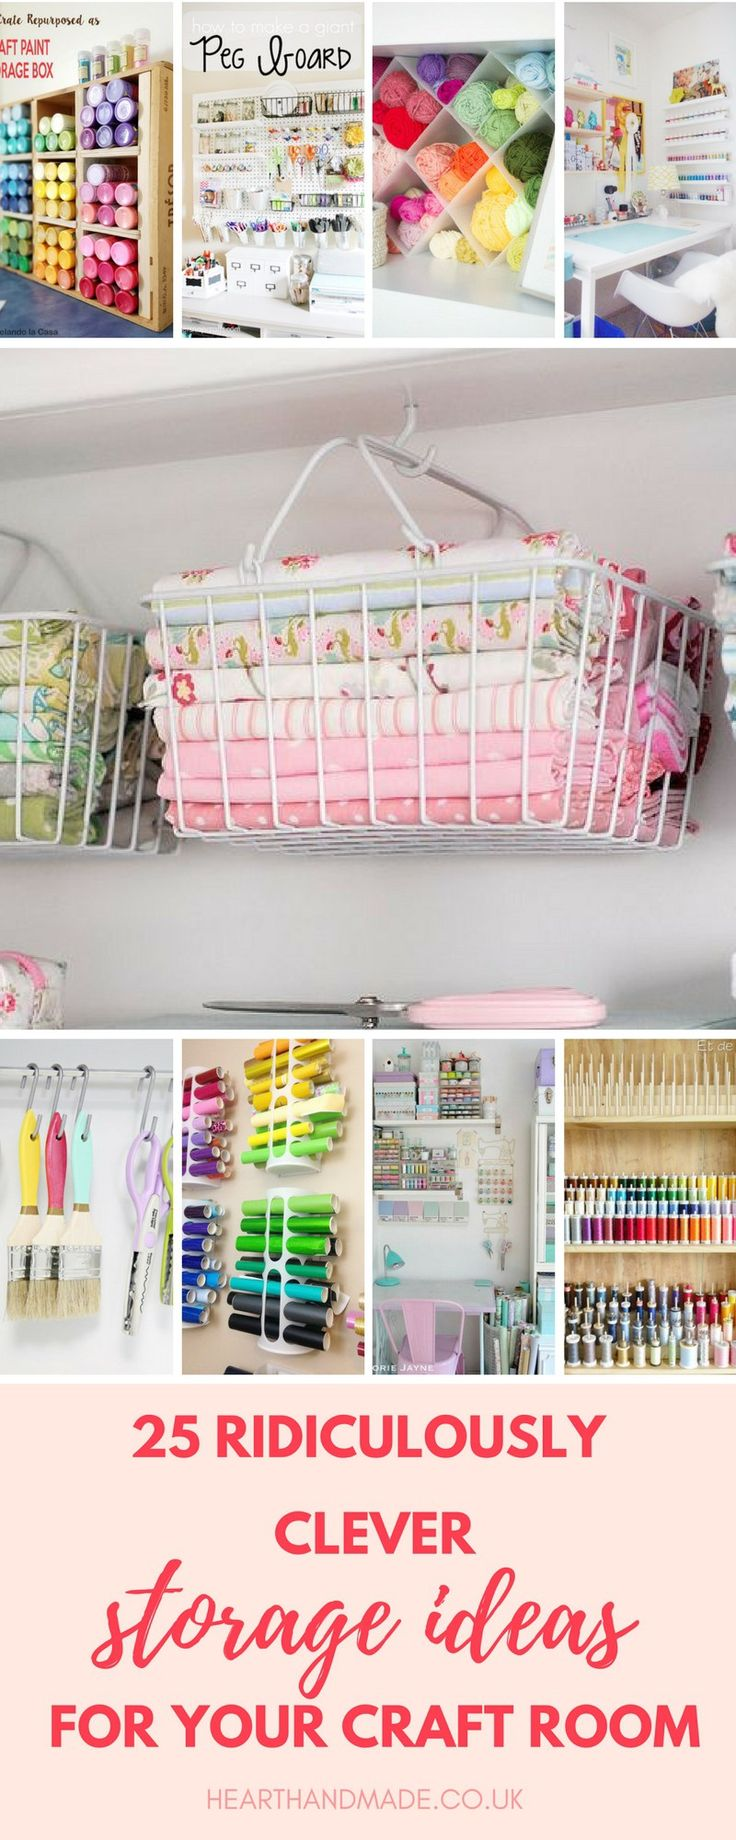 If you're in need of craft storage ideas for your craft room then this list is exactly what you need to read! This post has small space craft storage ideas galore, for utilizing every inch of available space in your craft room